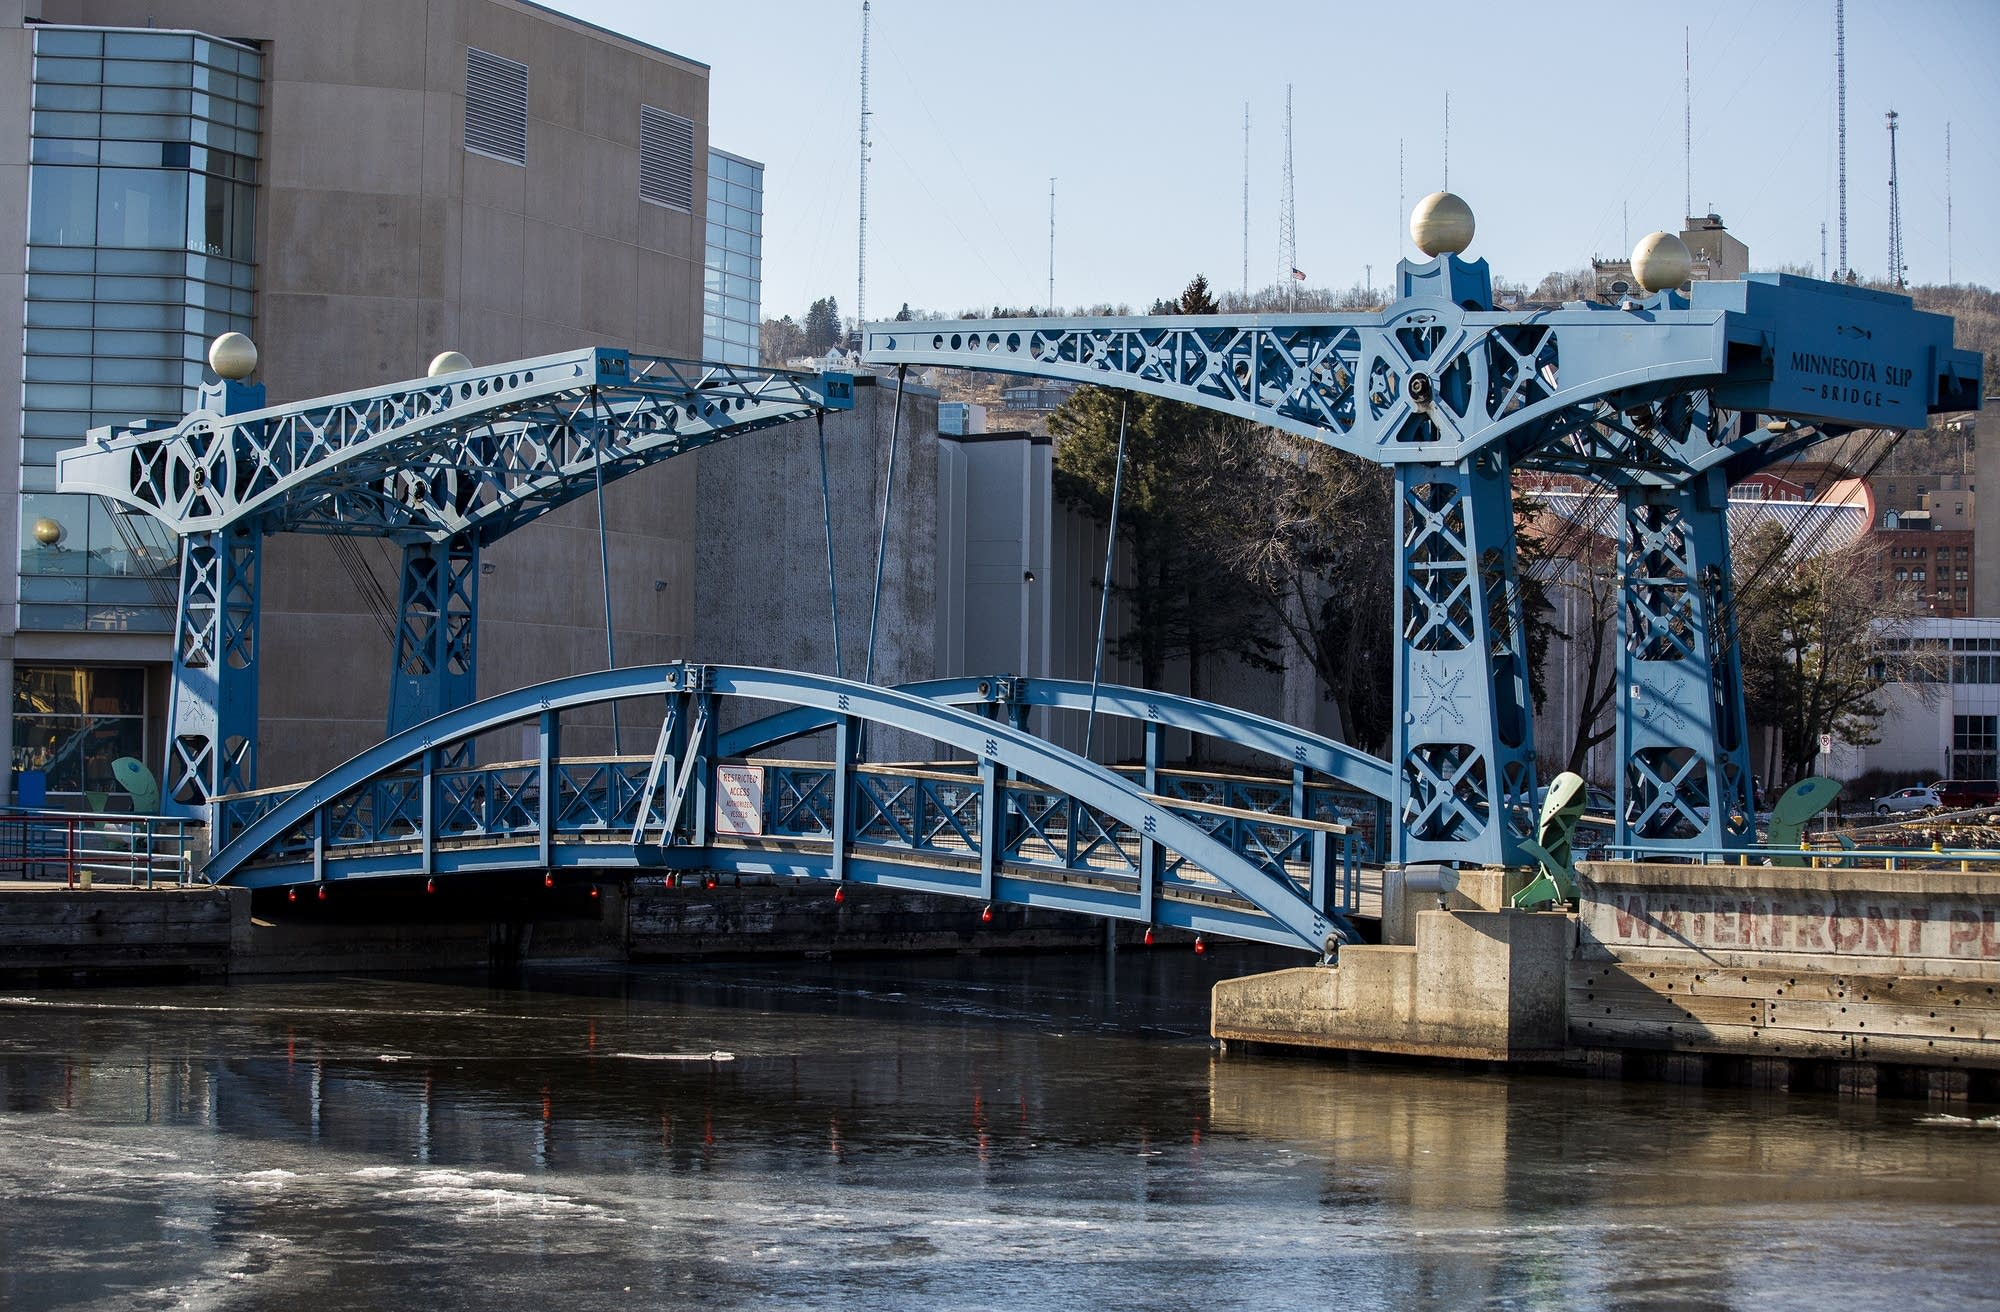 The Minnesota Slip Bridge or